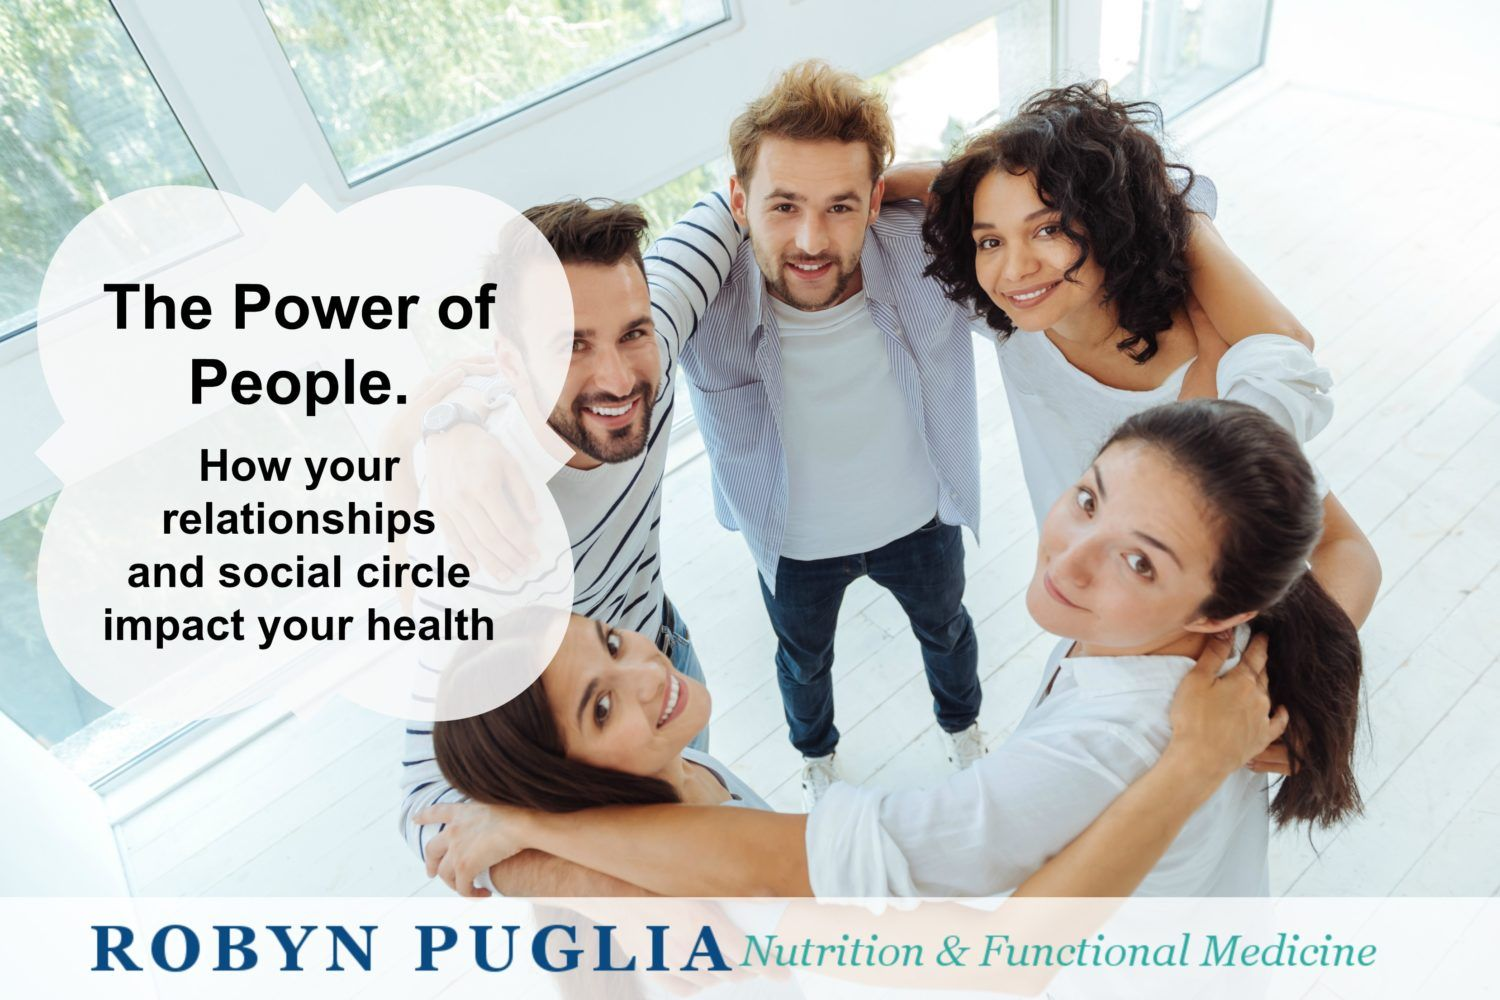 Power of People. How your relationships and social circle impact your health